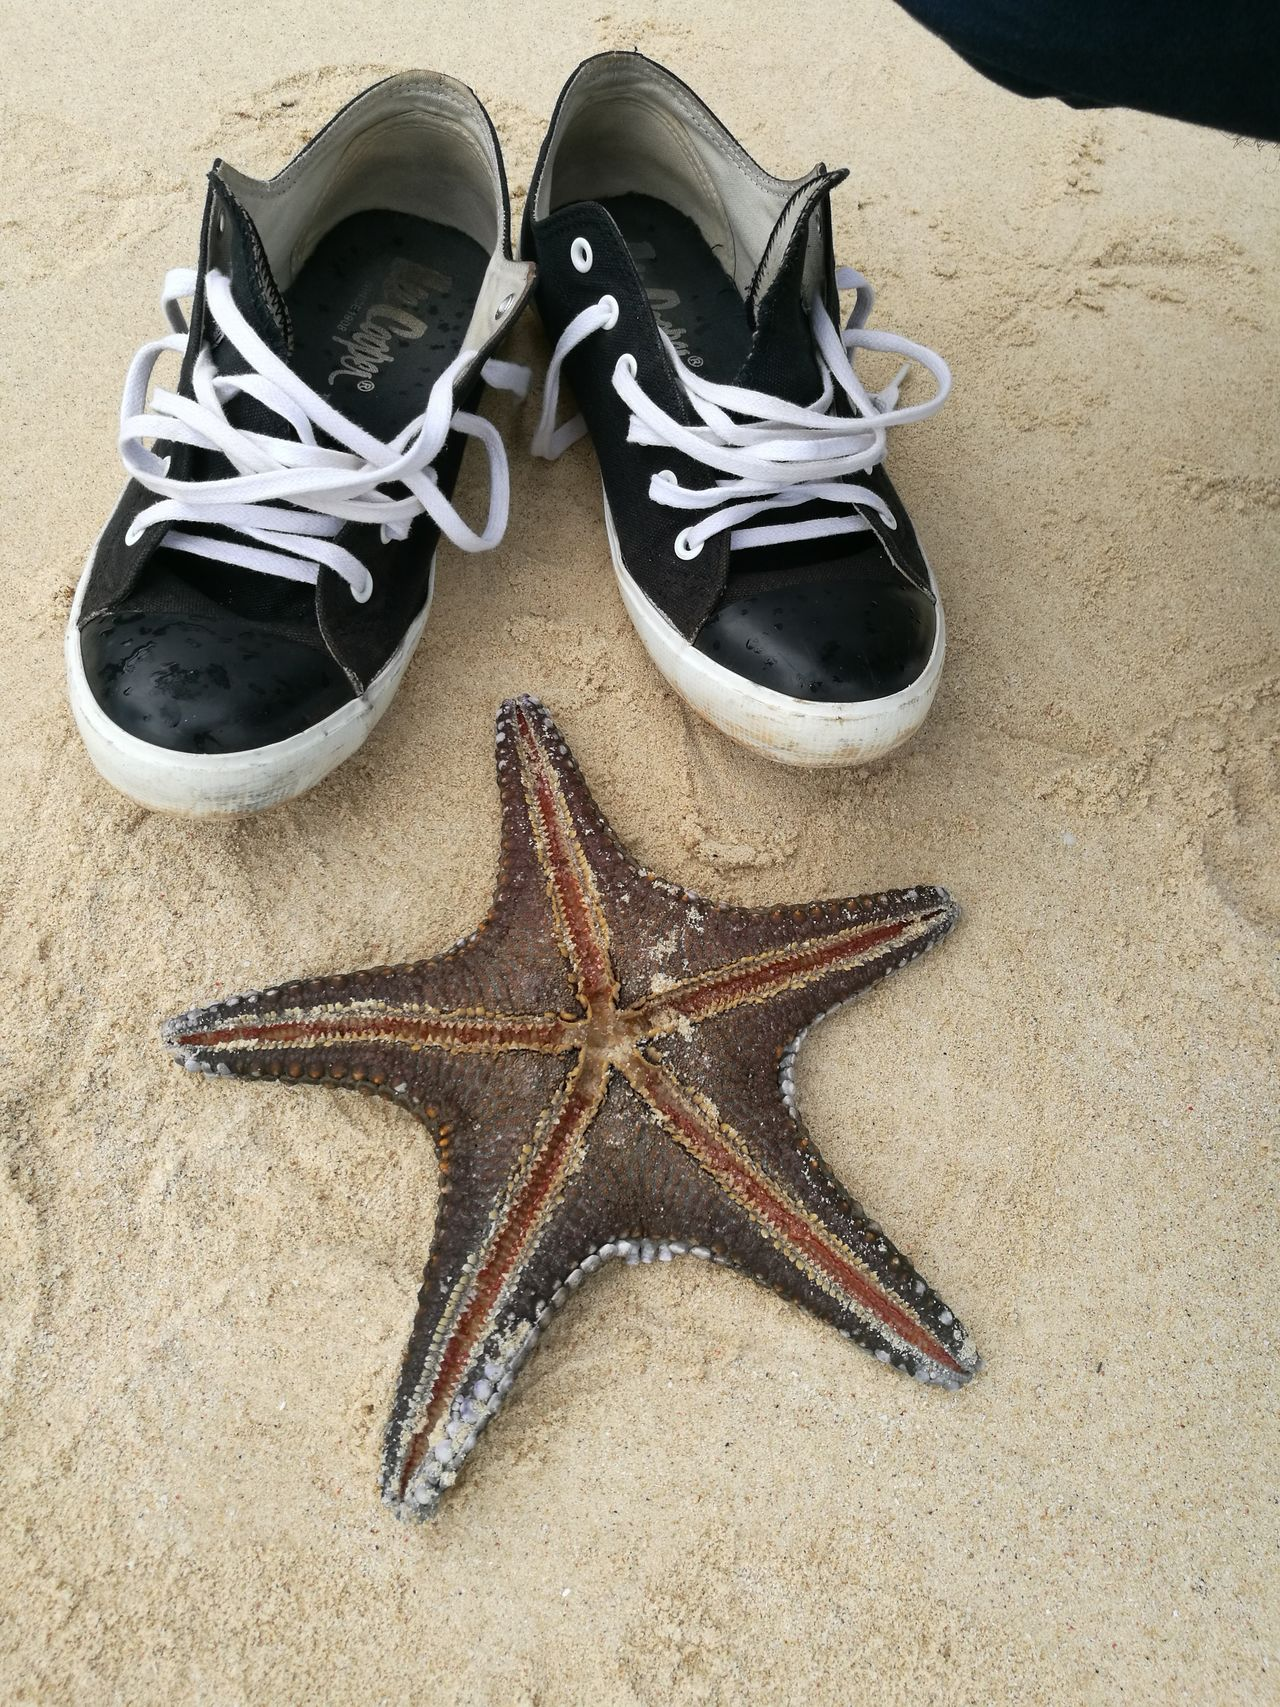 Starfish At Beach Nature Photography OpenEdit EyeEm Best Shots Eyeemnaturelover Exceptional Photographs Getting Inspired